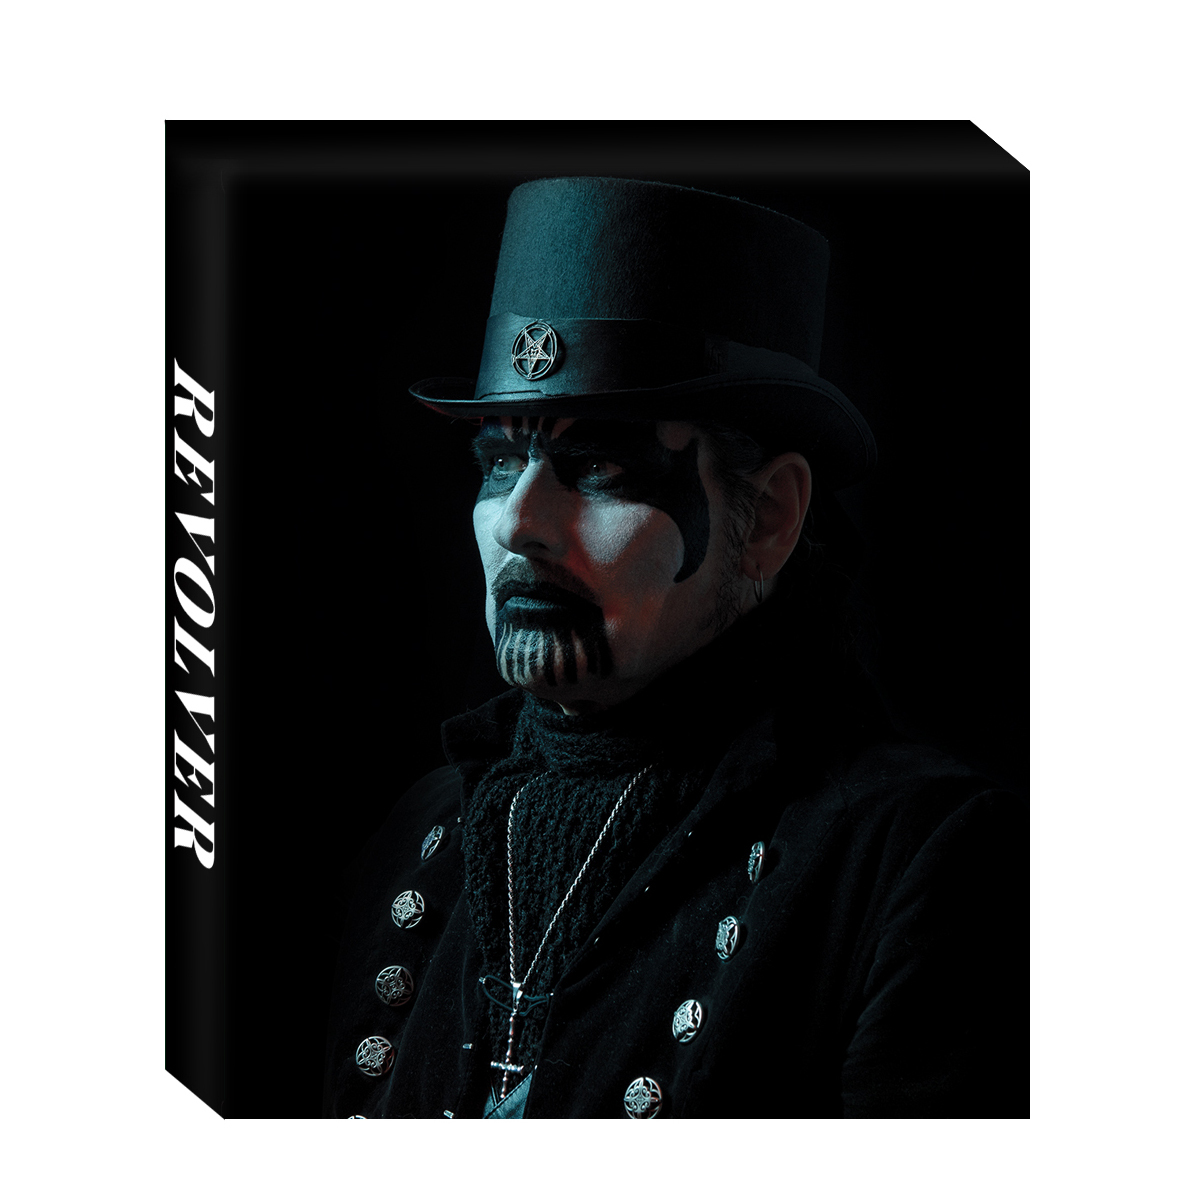 DEC/JAN 2019 THE DREAMS AND NIGHTMARES ISSUE FEATURING KING DIAMOND — BOX SET